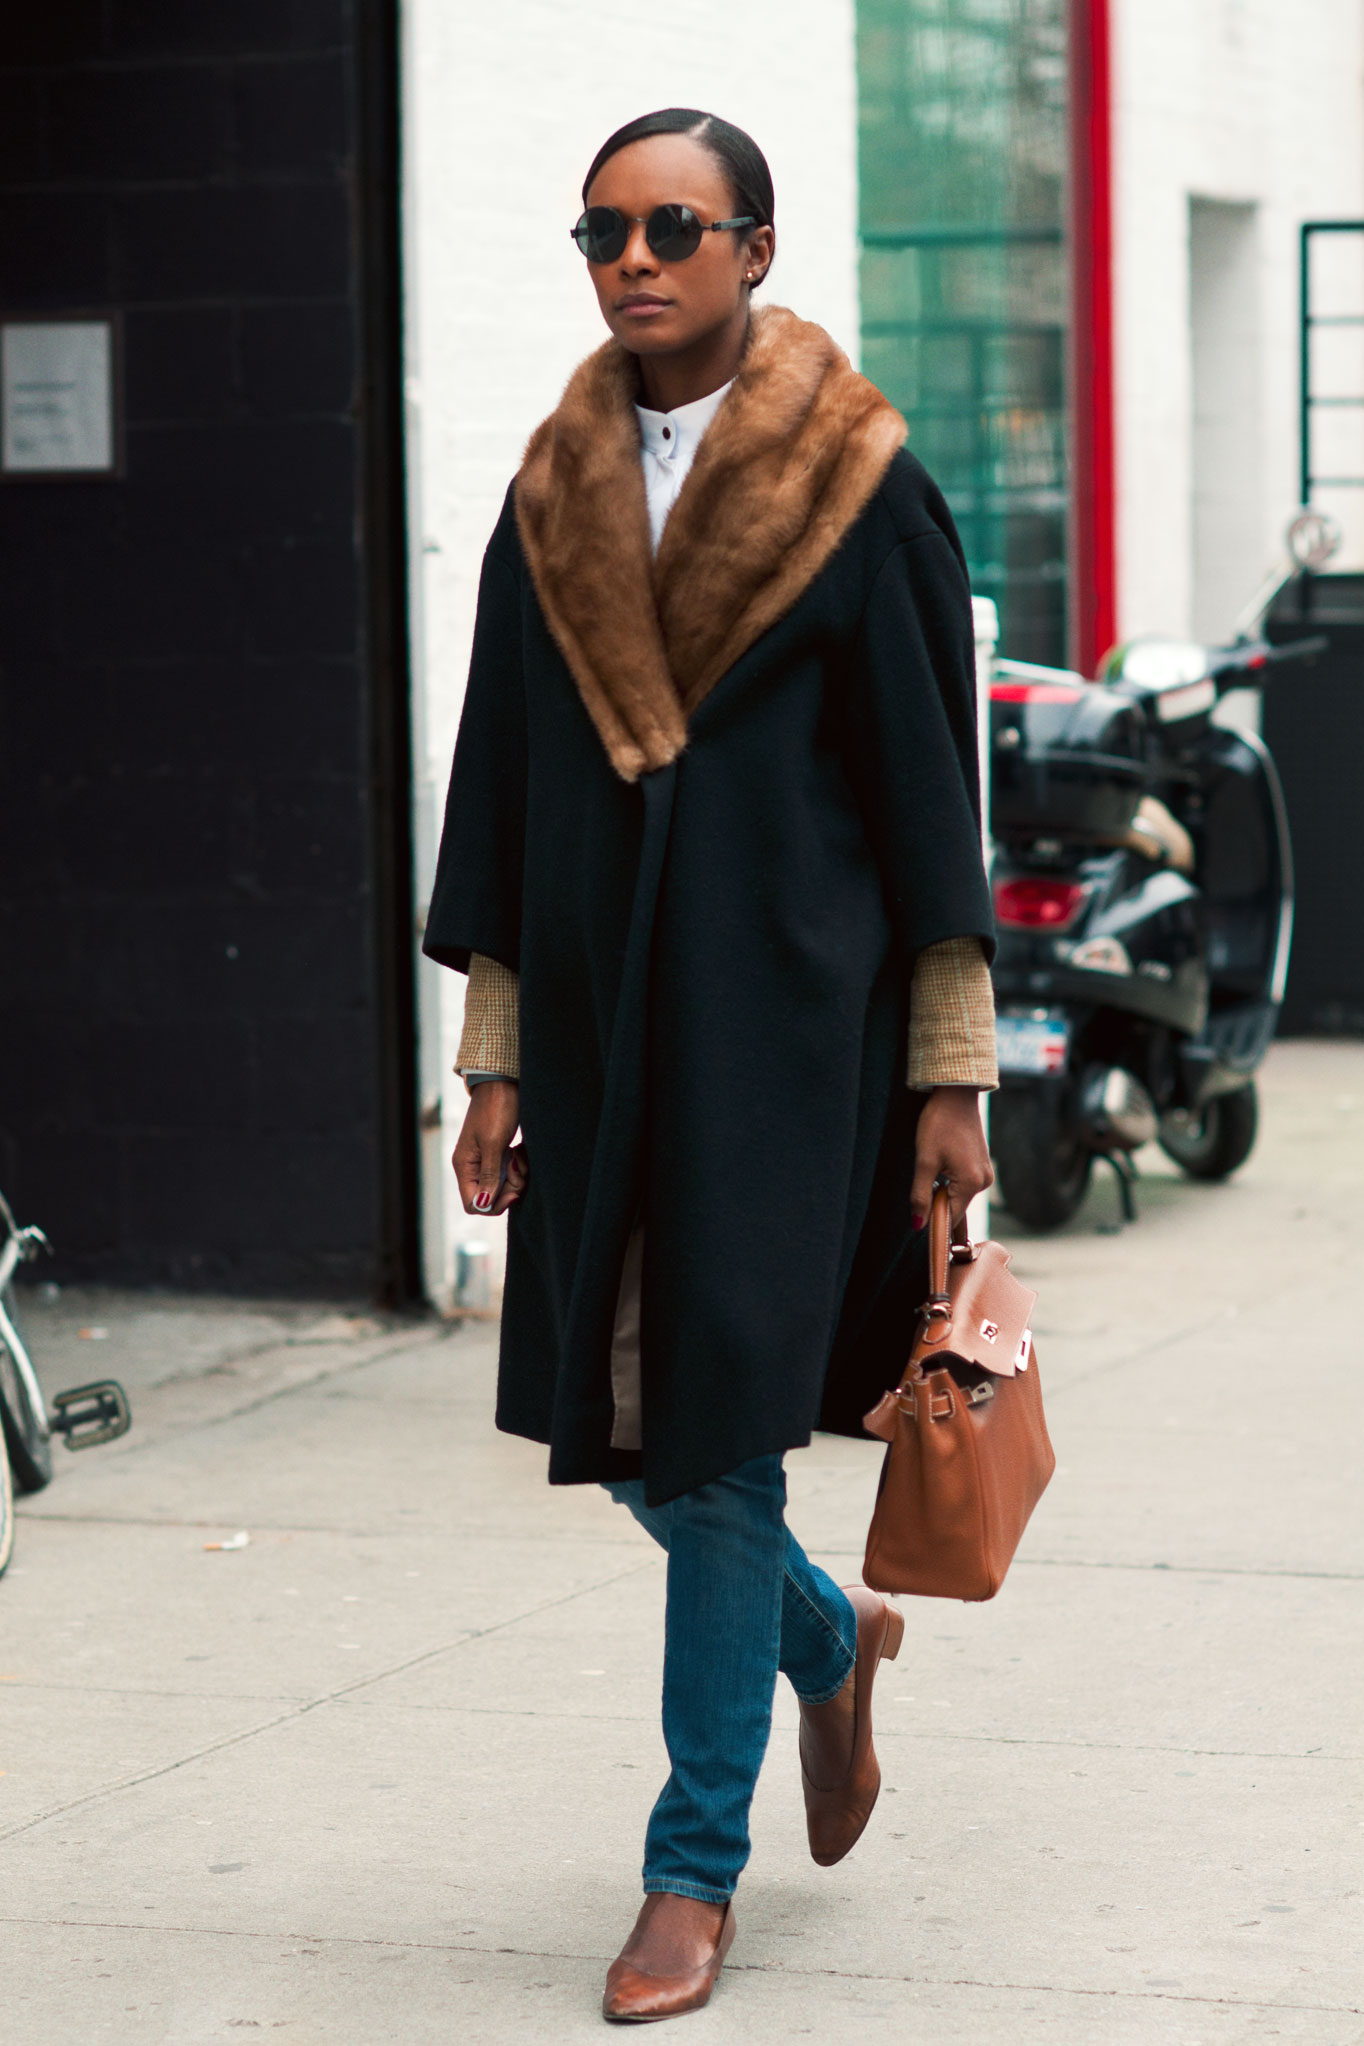 Shala Monroque at New York Fashion Week Fall/Winter 2012